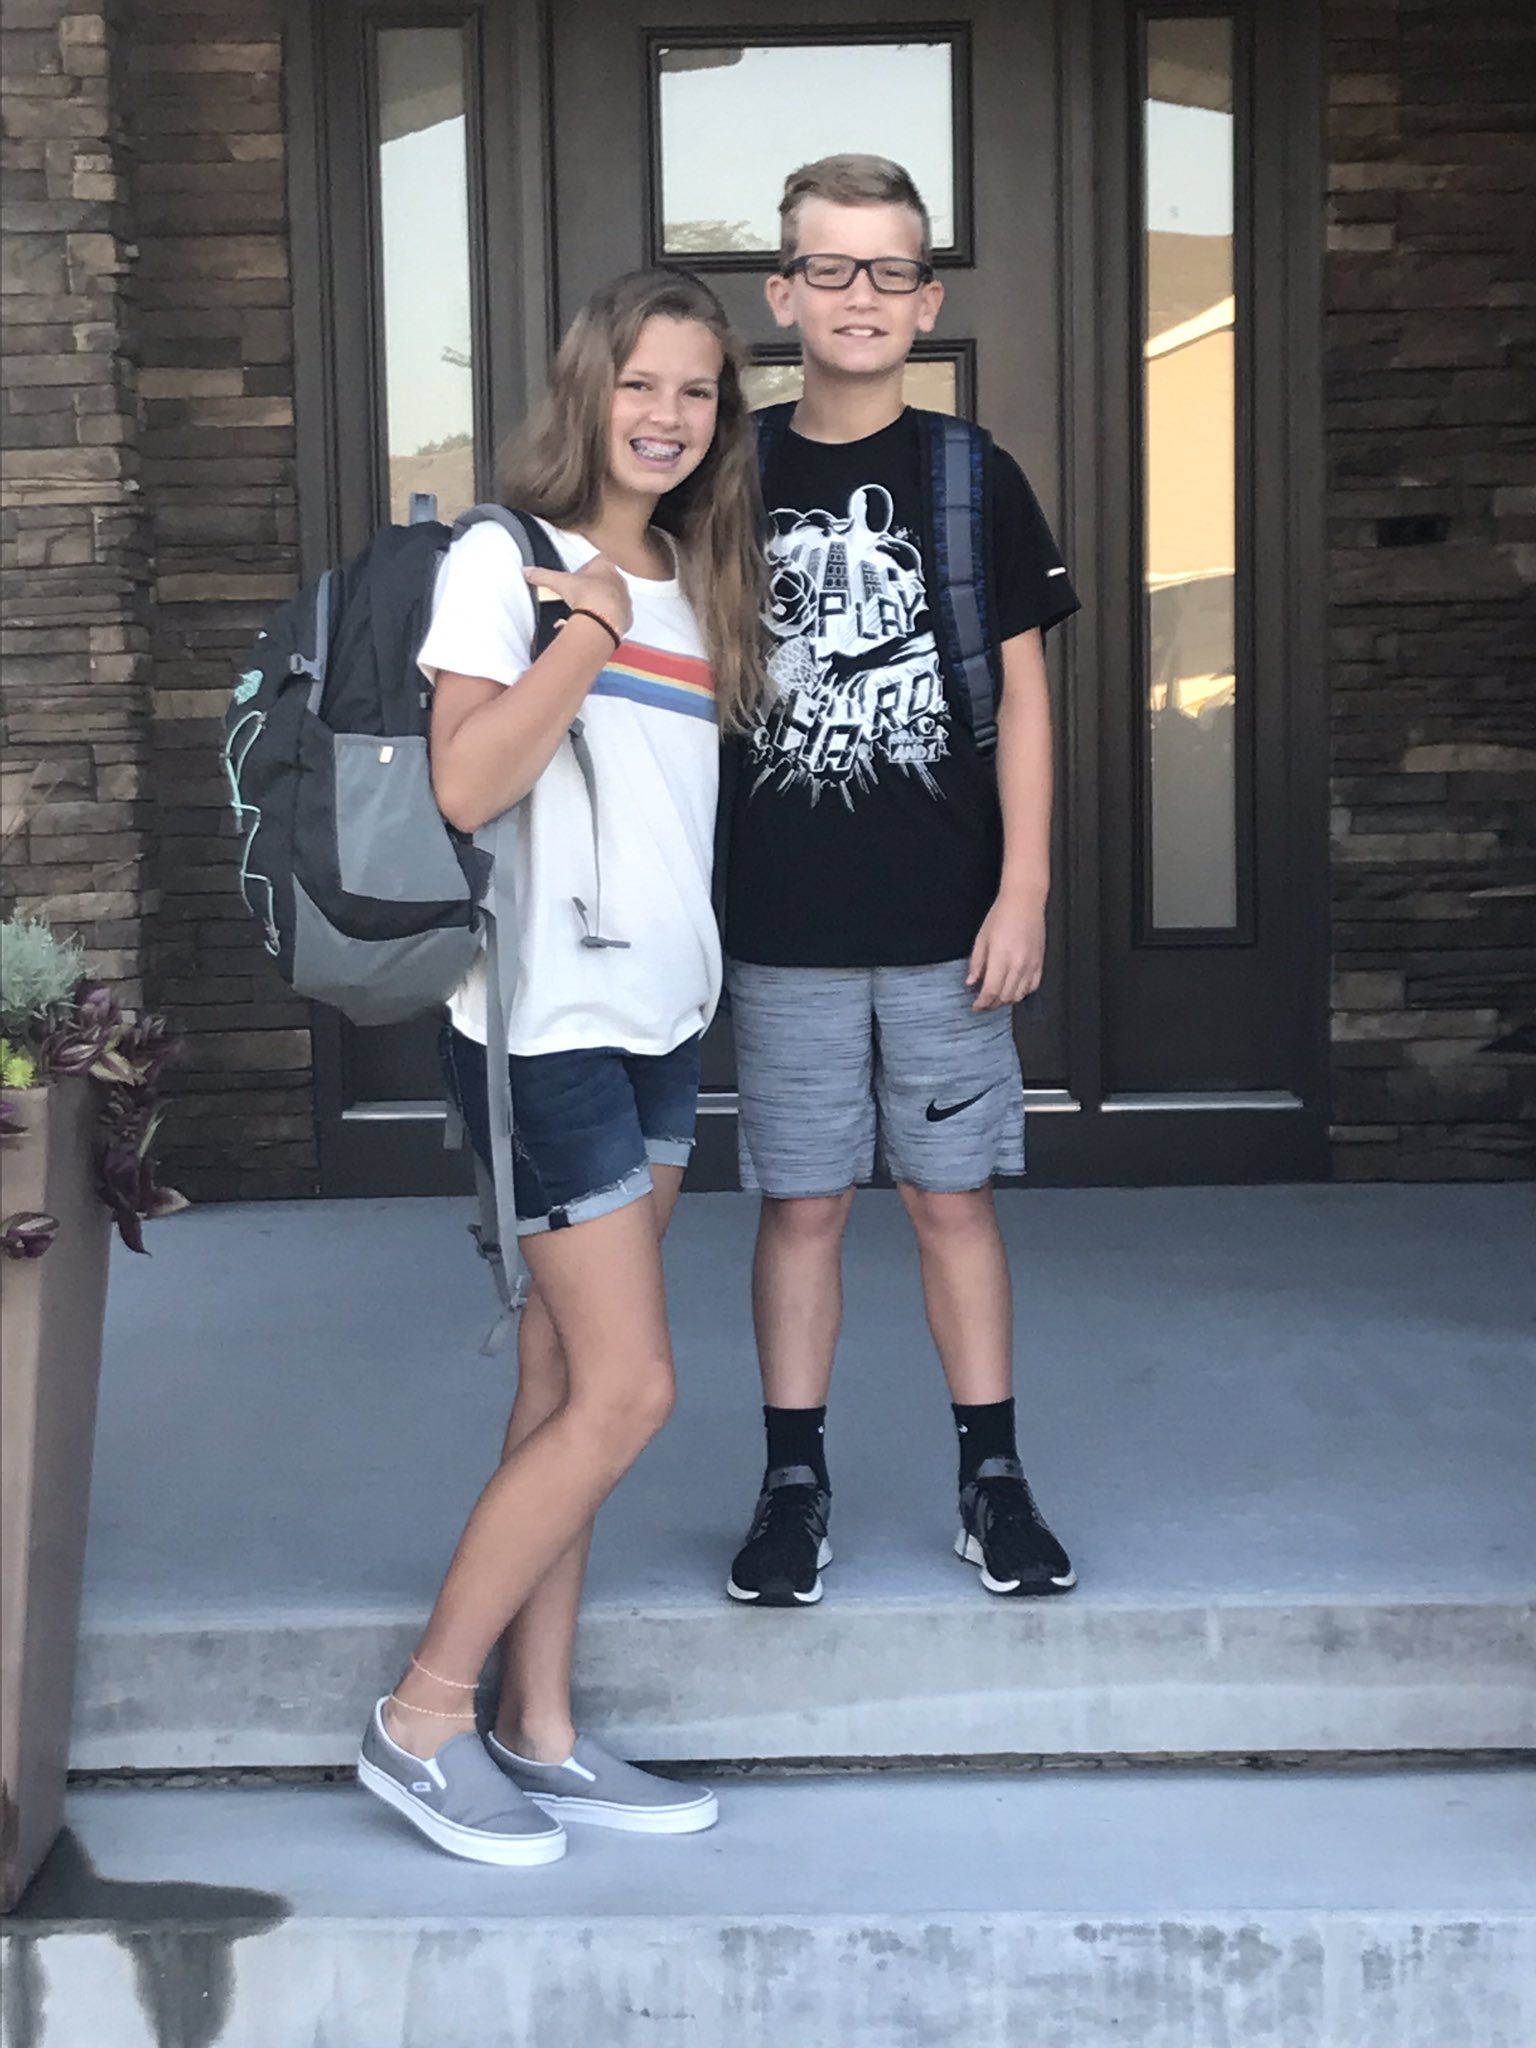 Students first day of school